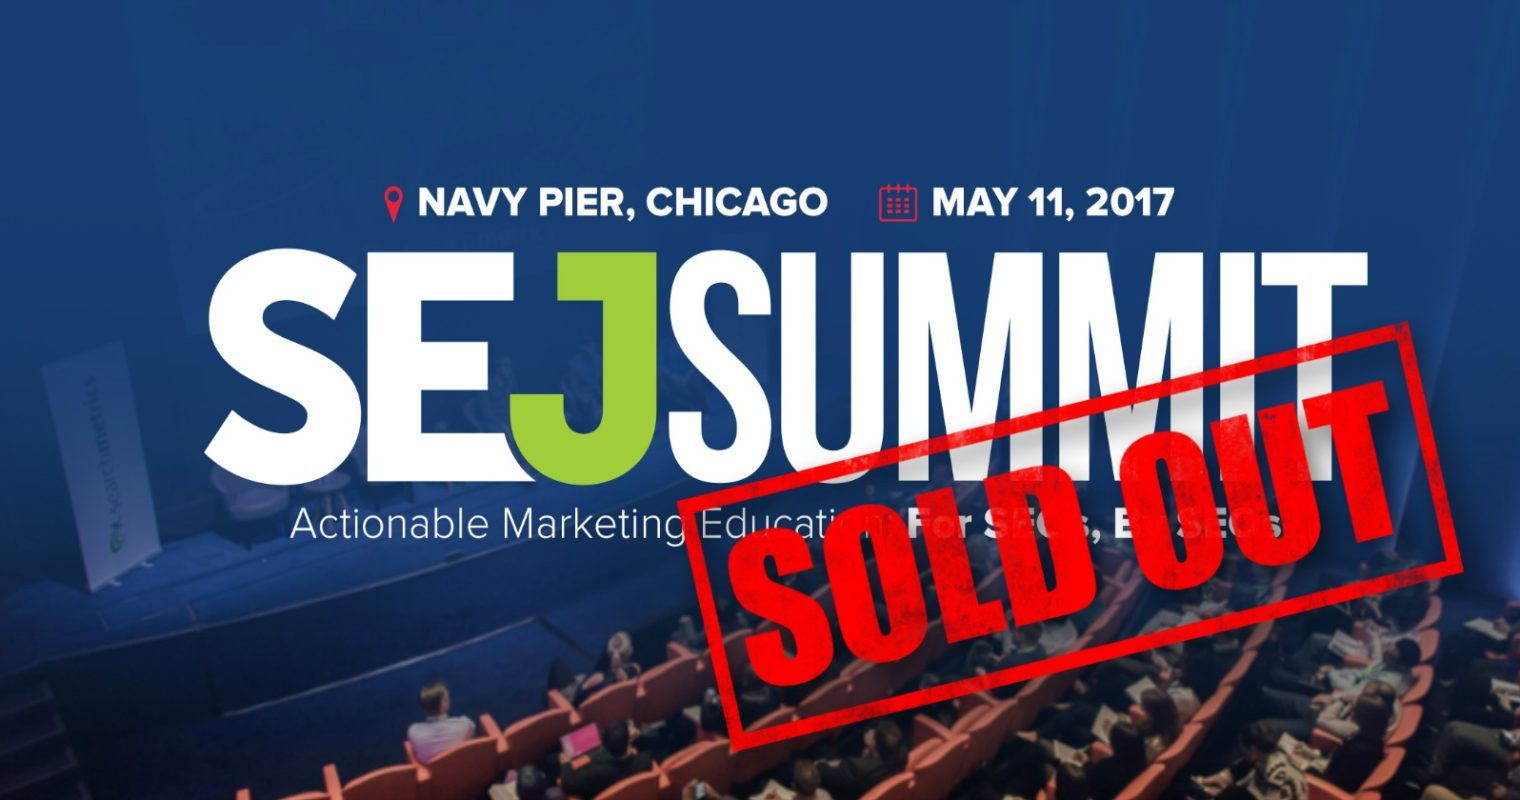 It's Official: SEJ Summit 2017 Is Sold Out